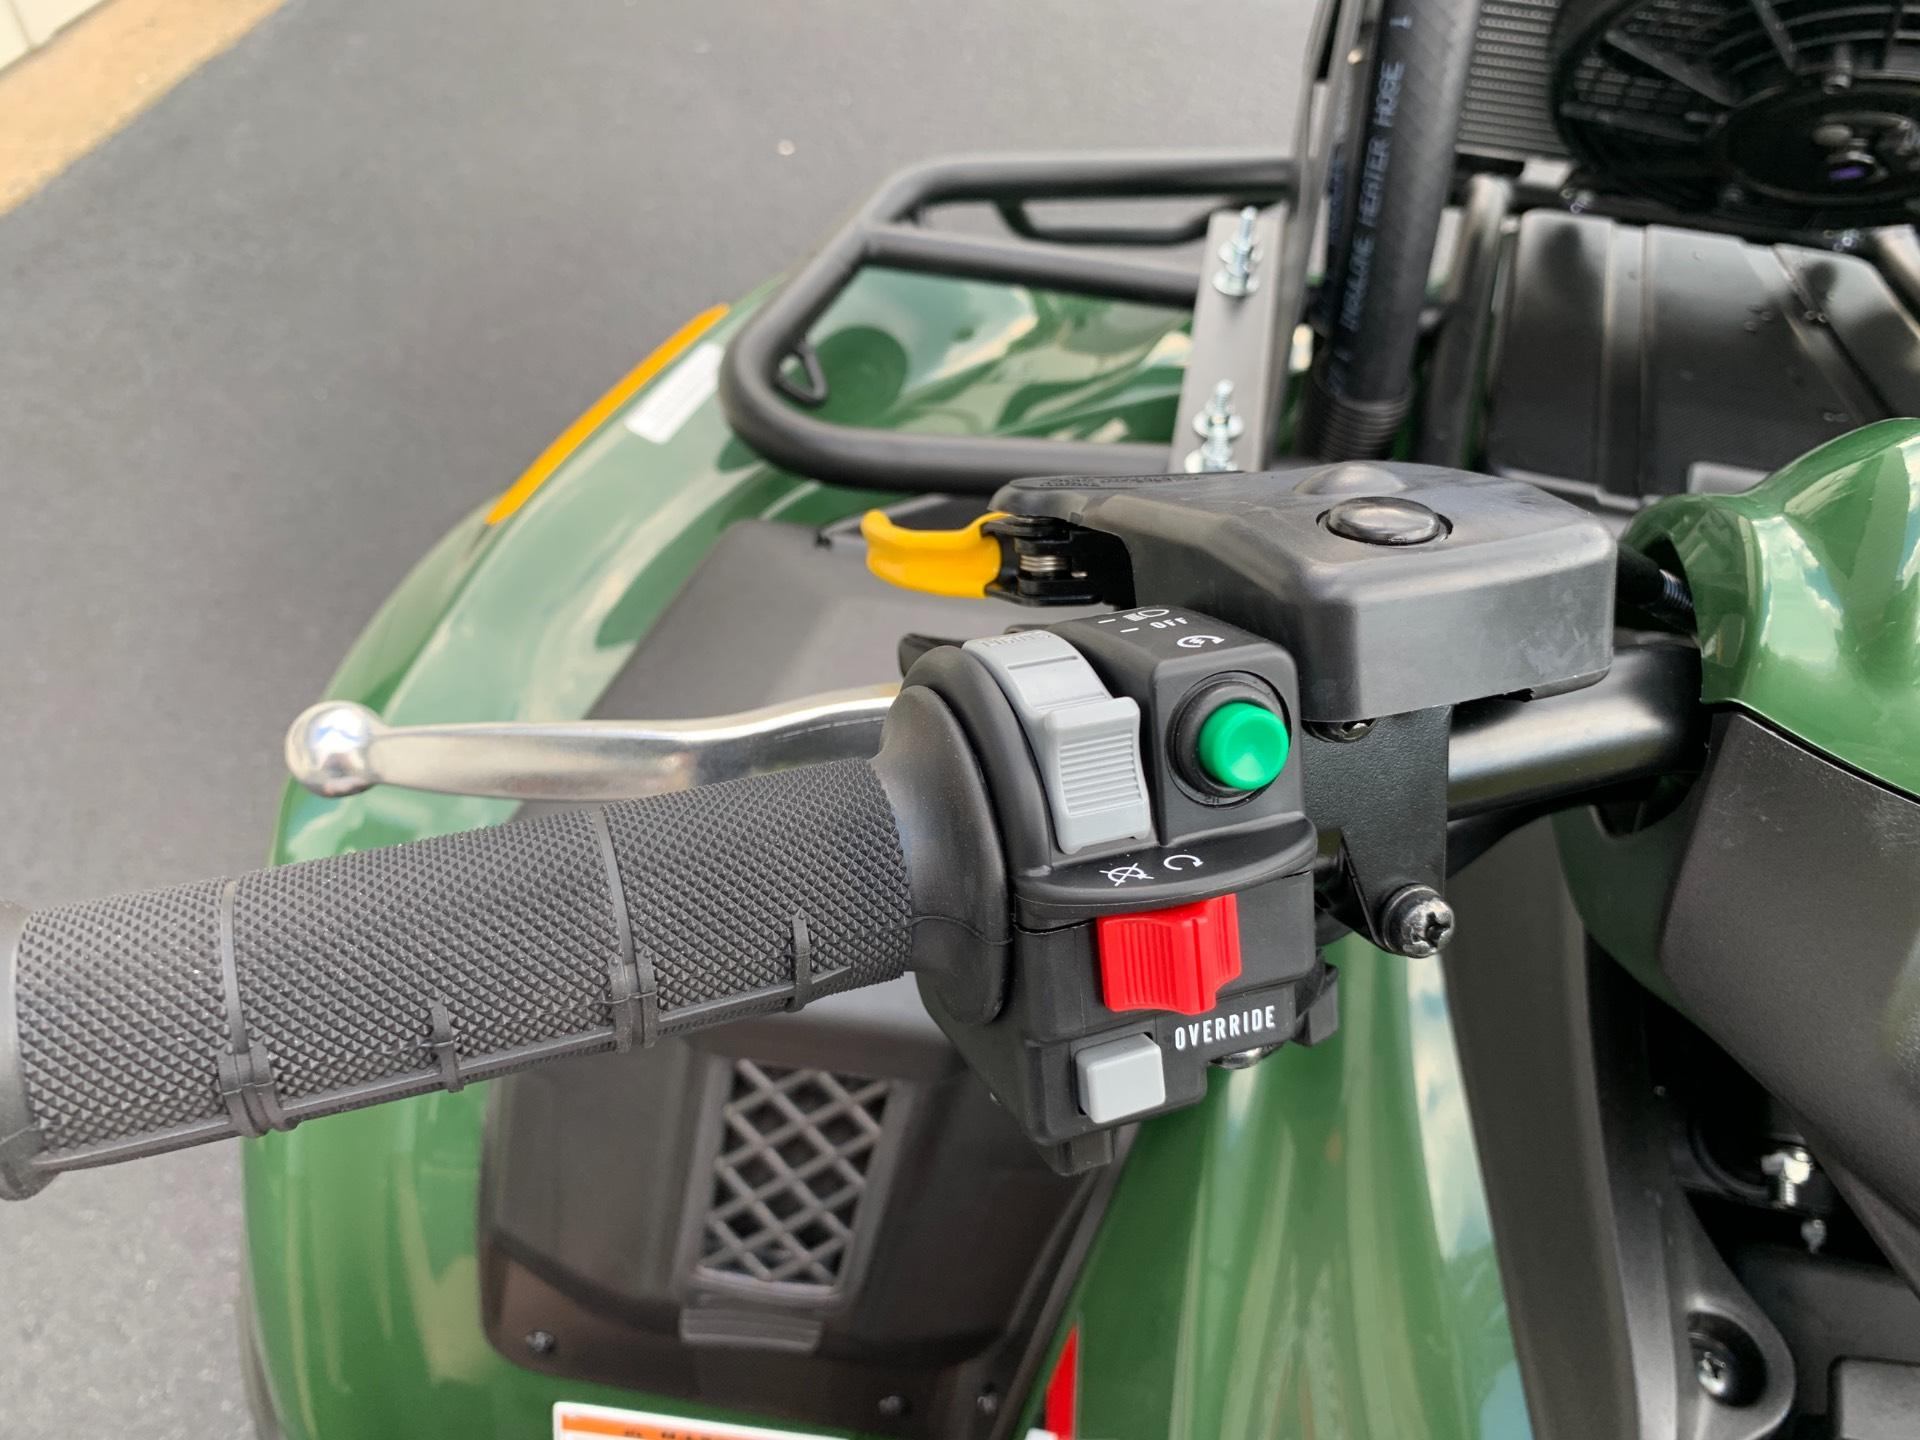 2019 Kawasaki Brute Force 750 4x4i in Greenville, North Carolina - Photo 17